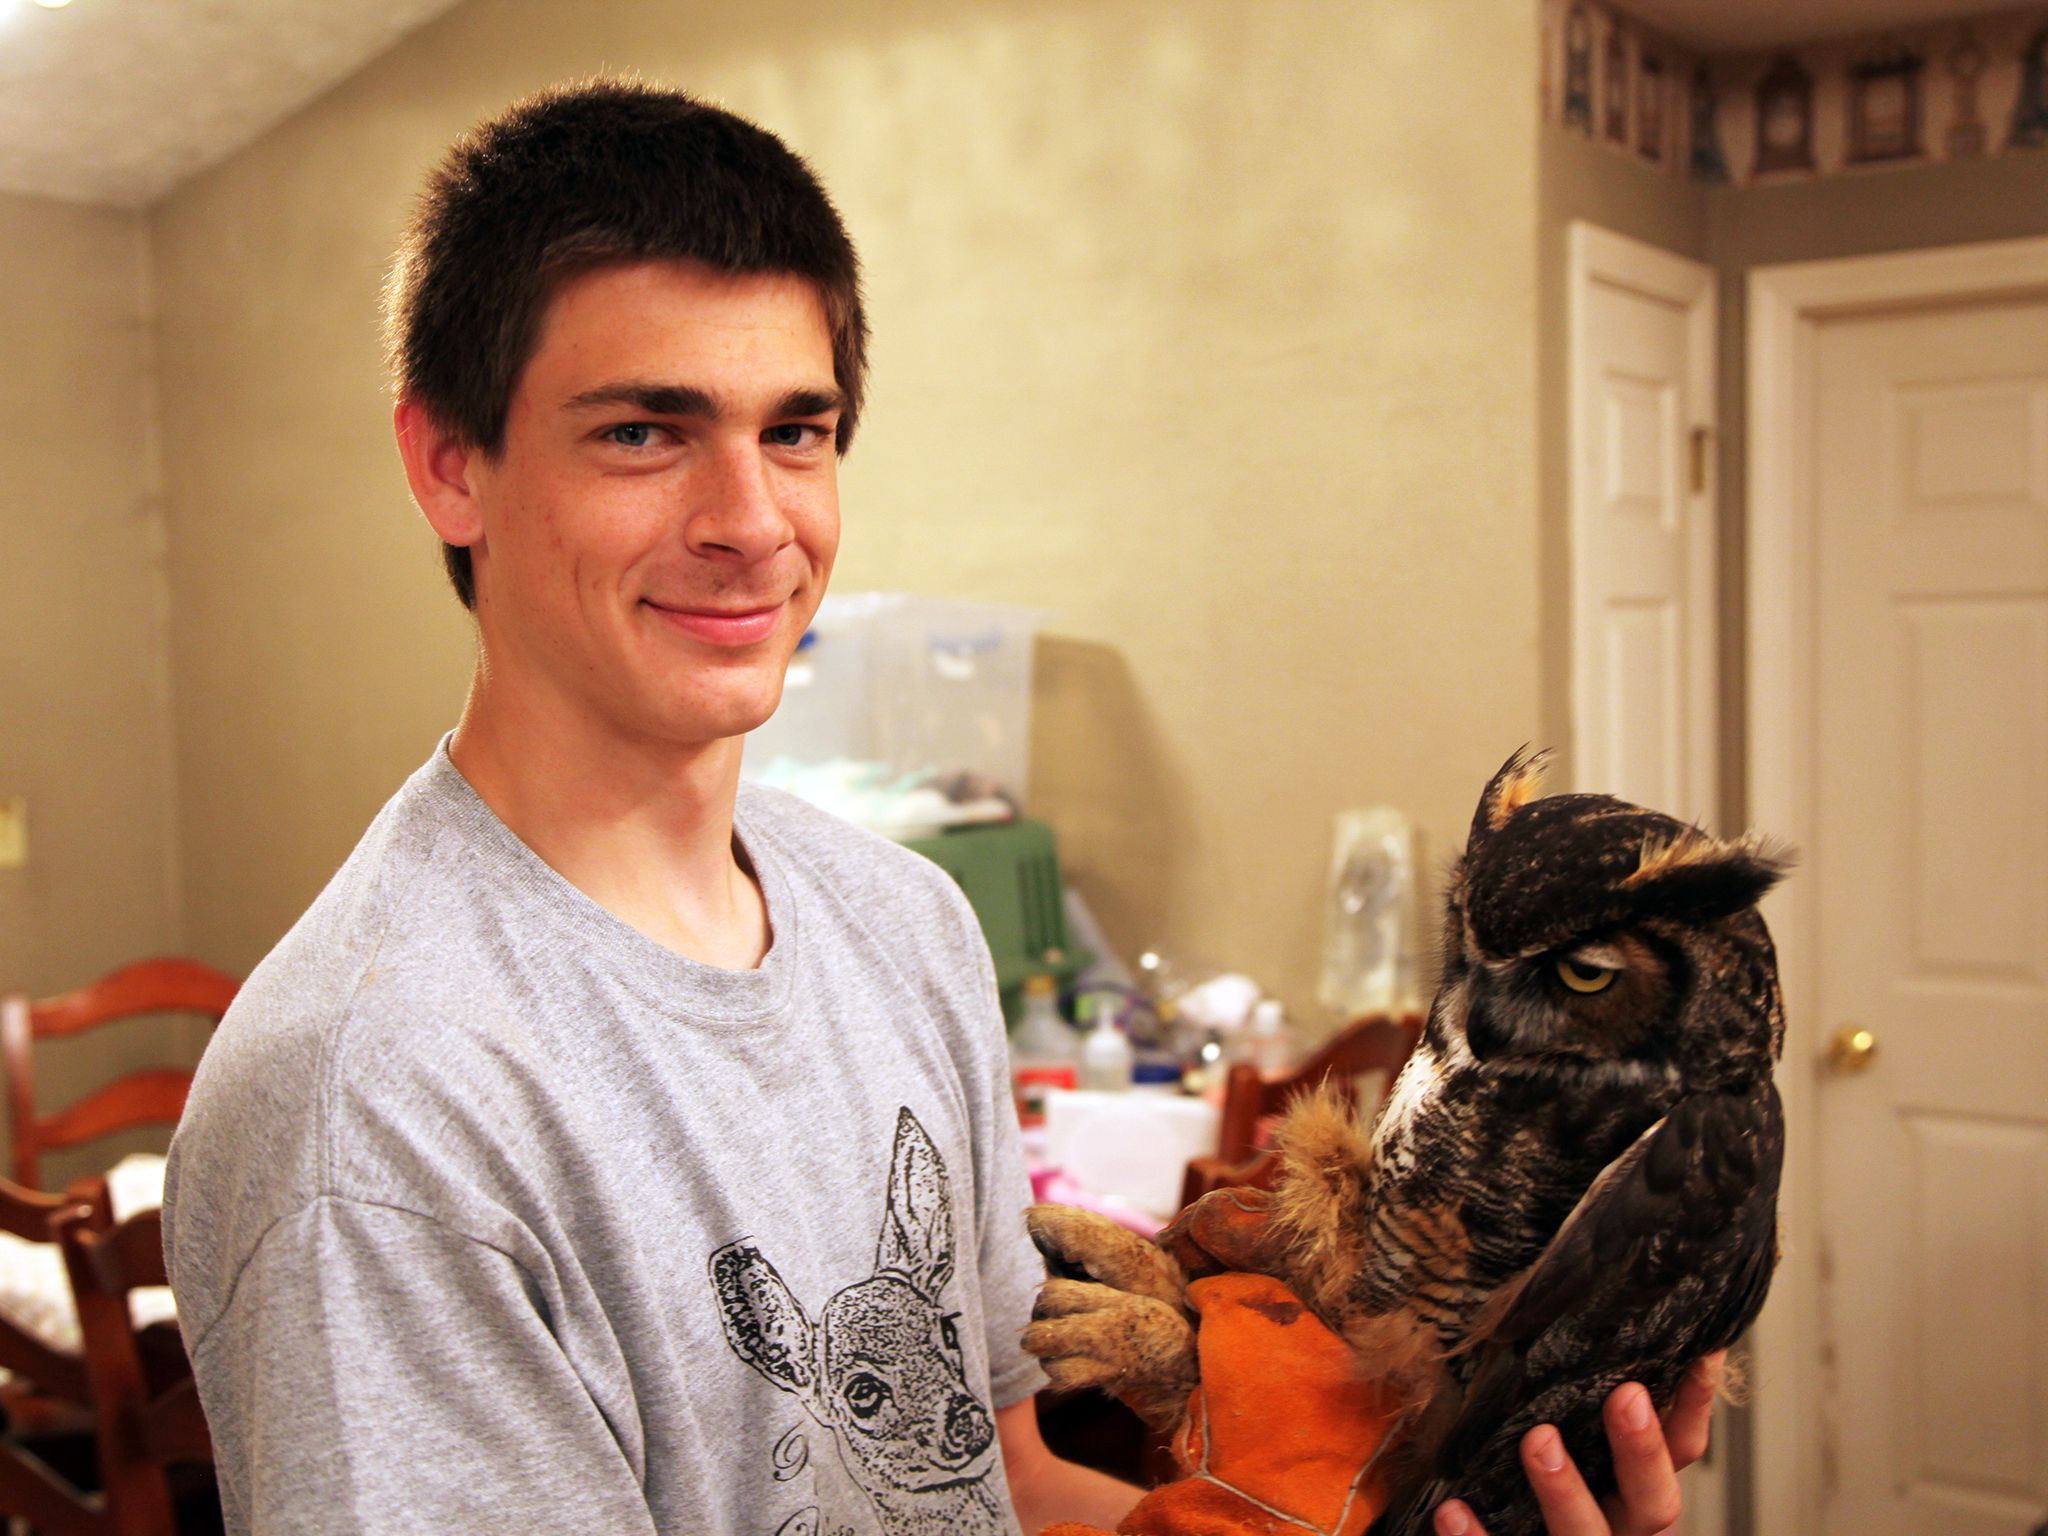 Greenville, Ky.: Grant Allen tends to an injured owl. This image is from Bandit Patrol. [Photo of the day - 一月 2015]